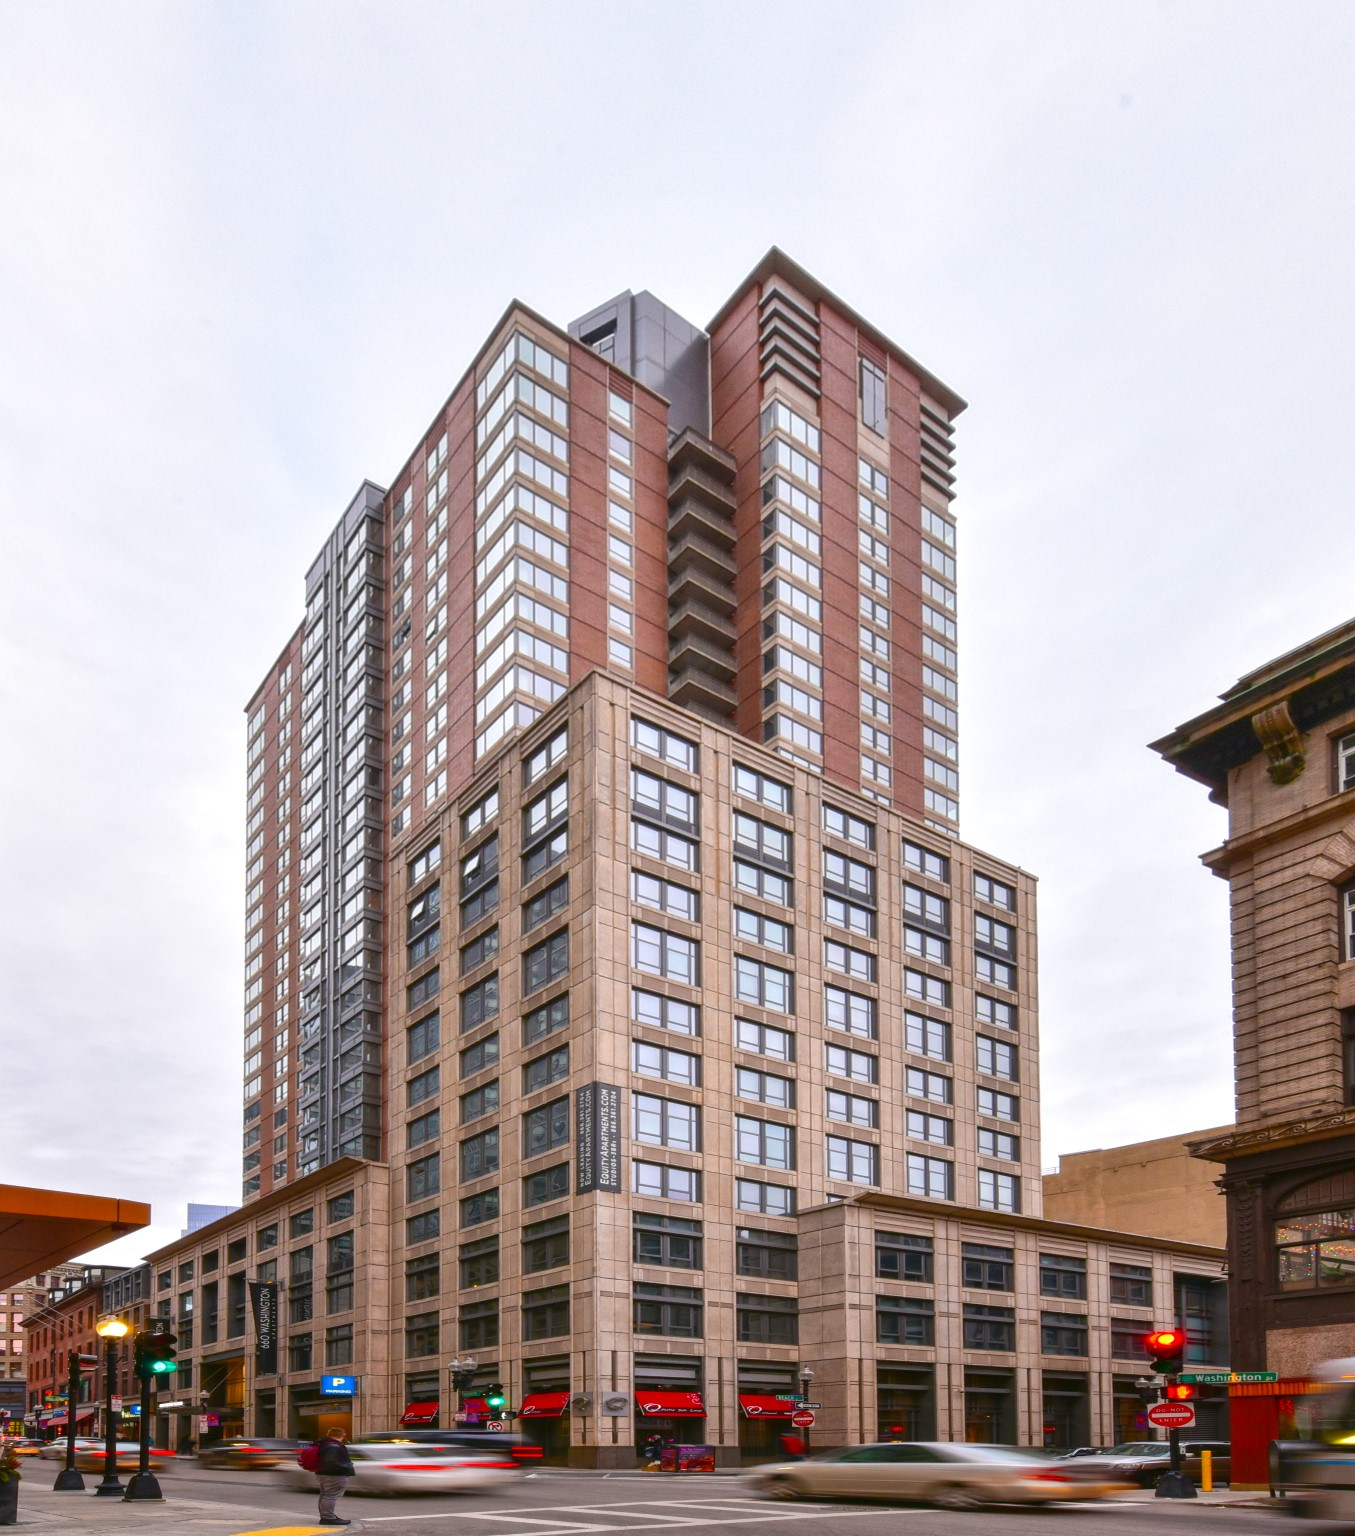 Boston Furnished Apartments & Corporate Housing